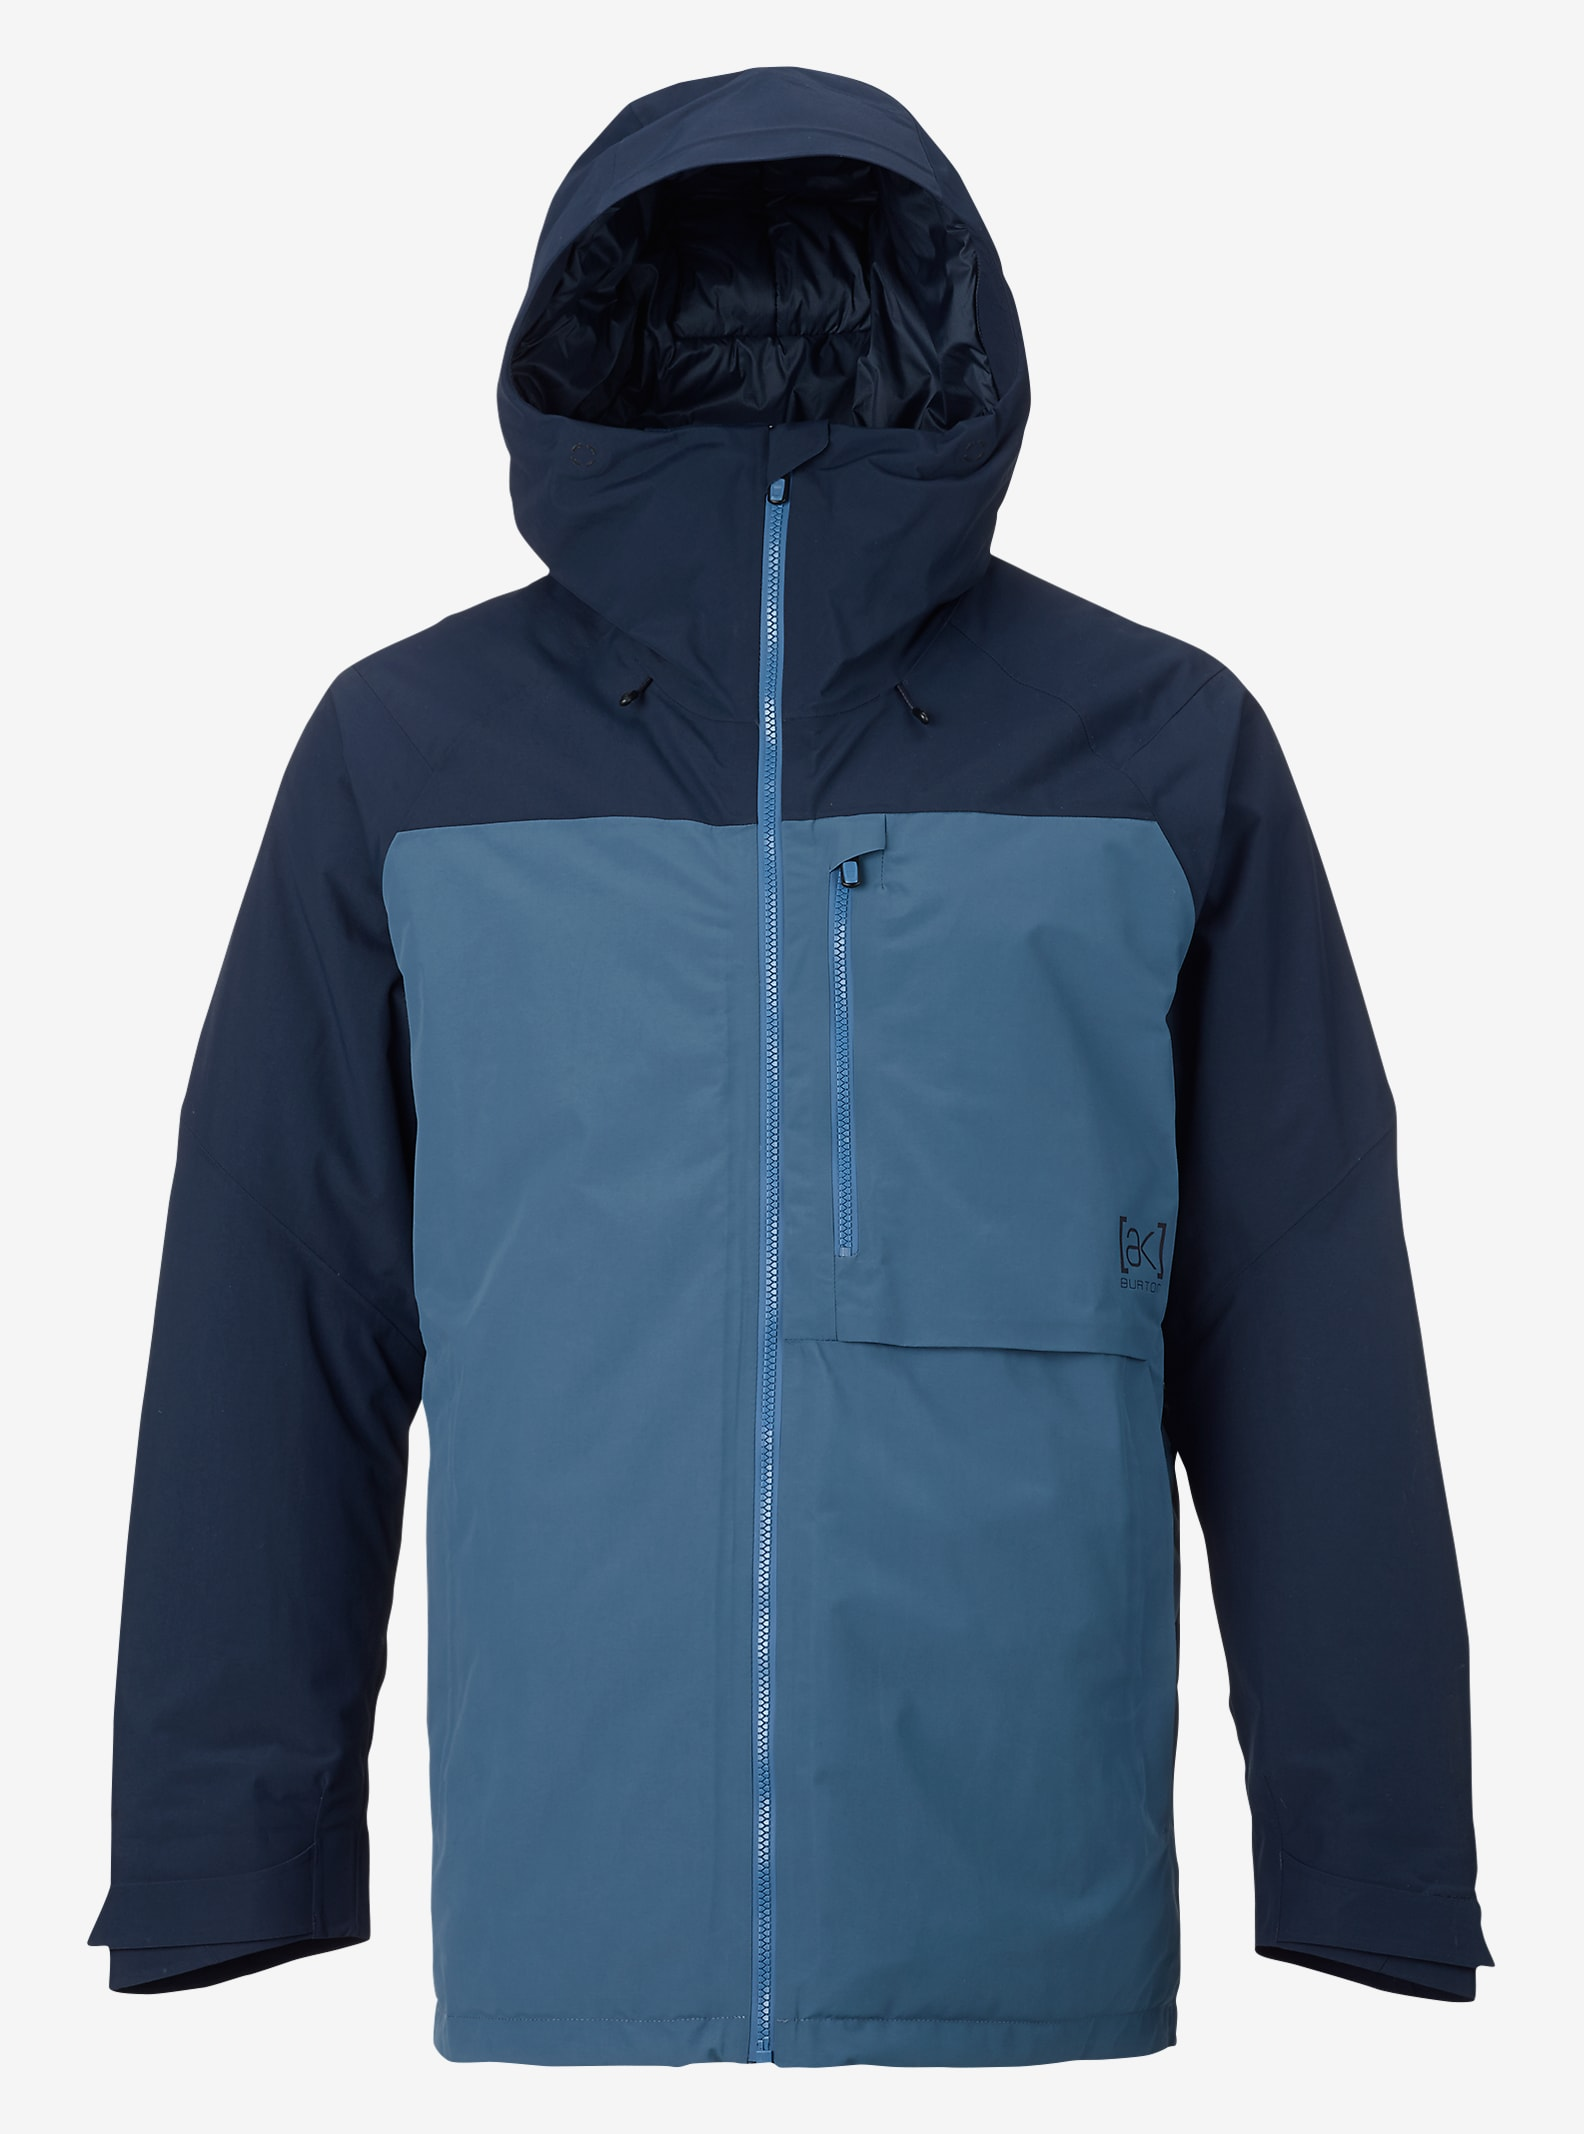 Burton [ak] 2L Helitack Jacket shown in Eclipse / Washed Blue